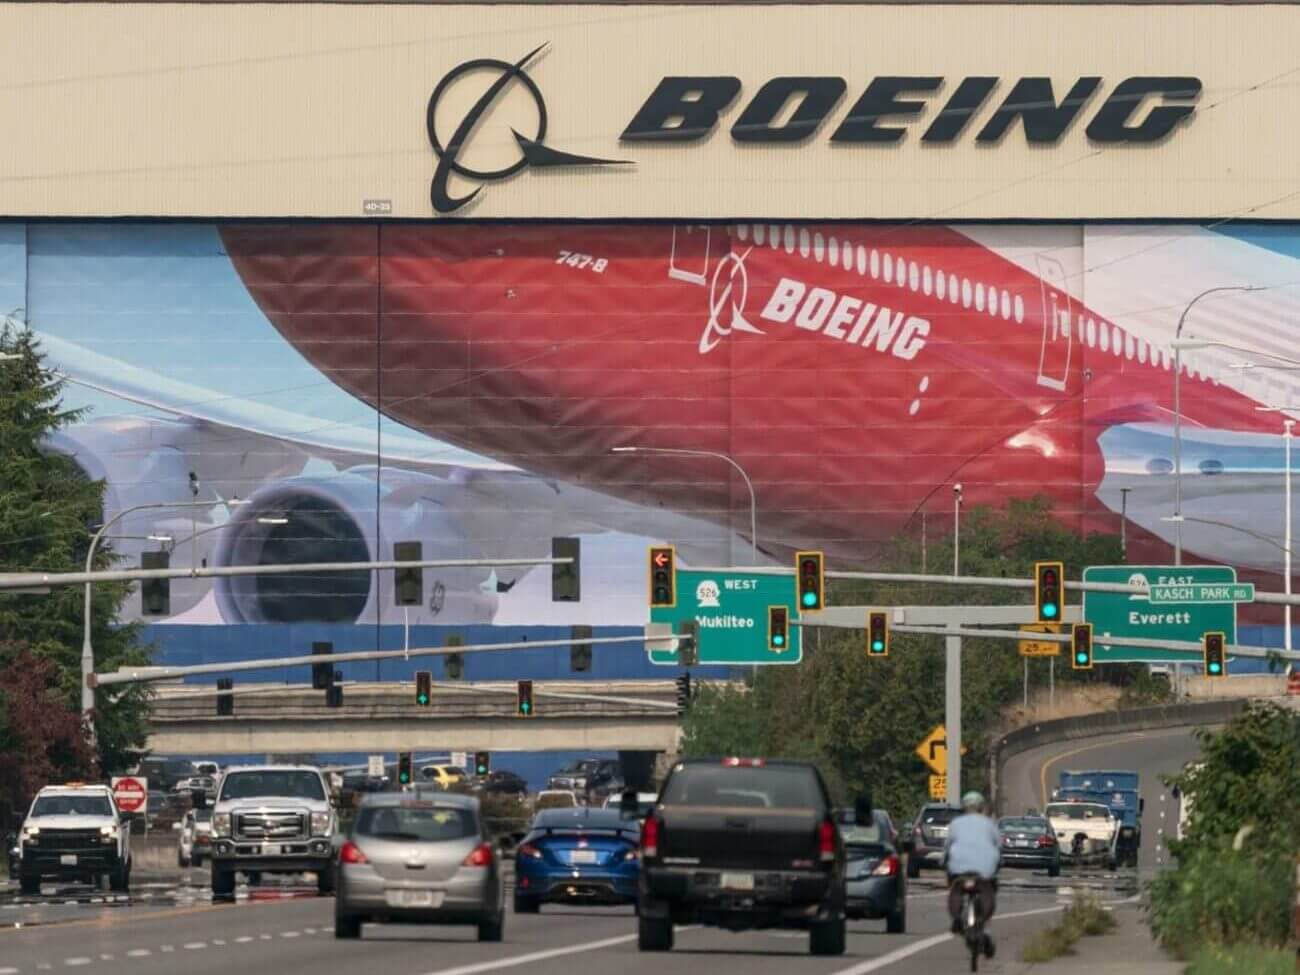 Boeing Is the Most modern Company to Trot a Hostile Enterprise Ambiance